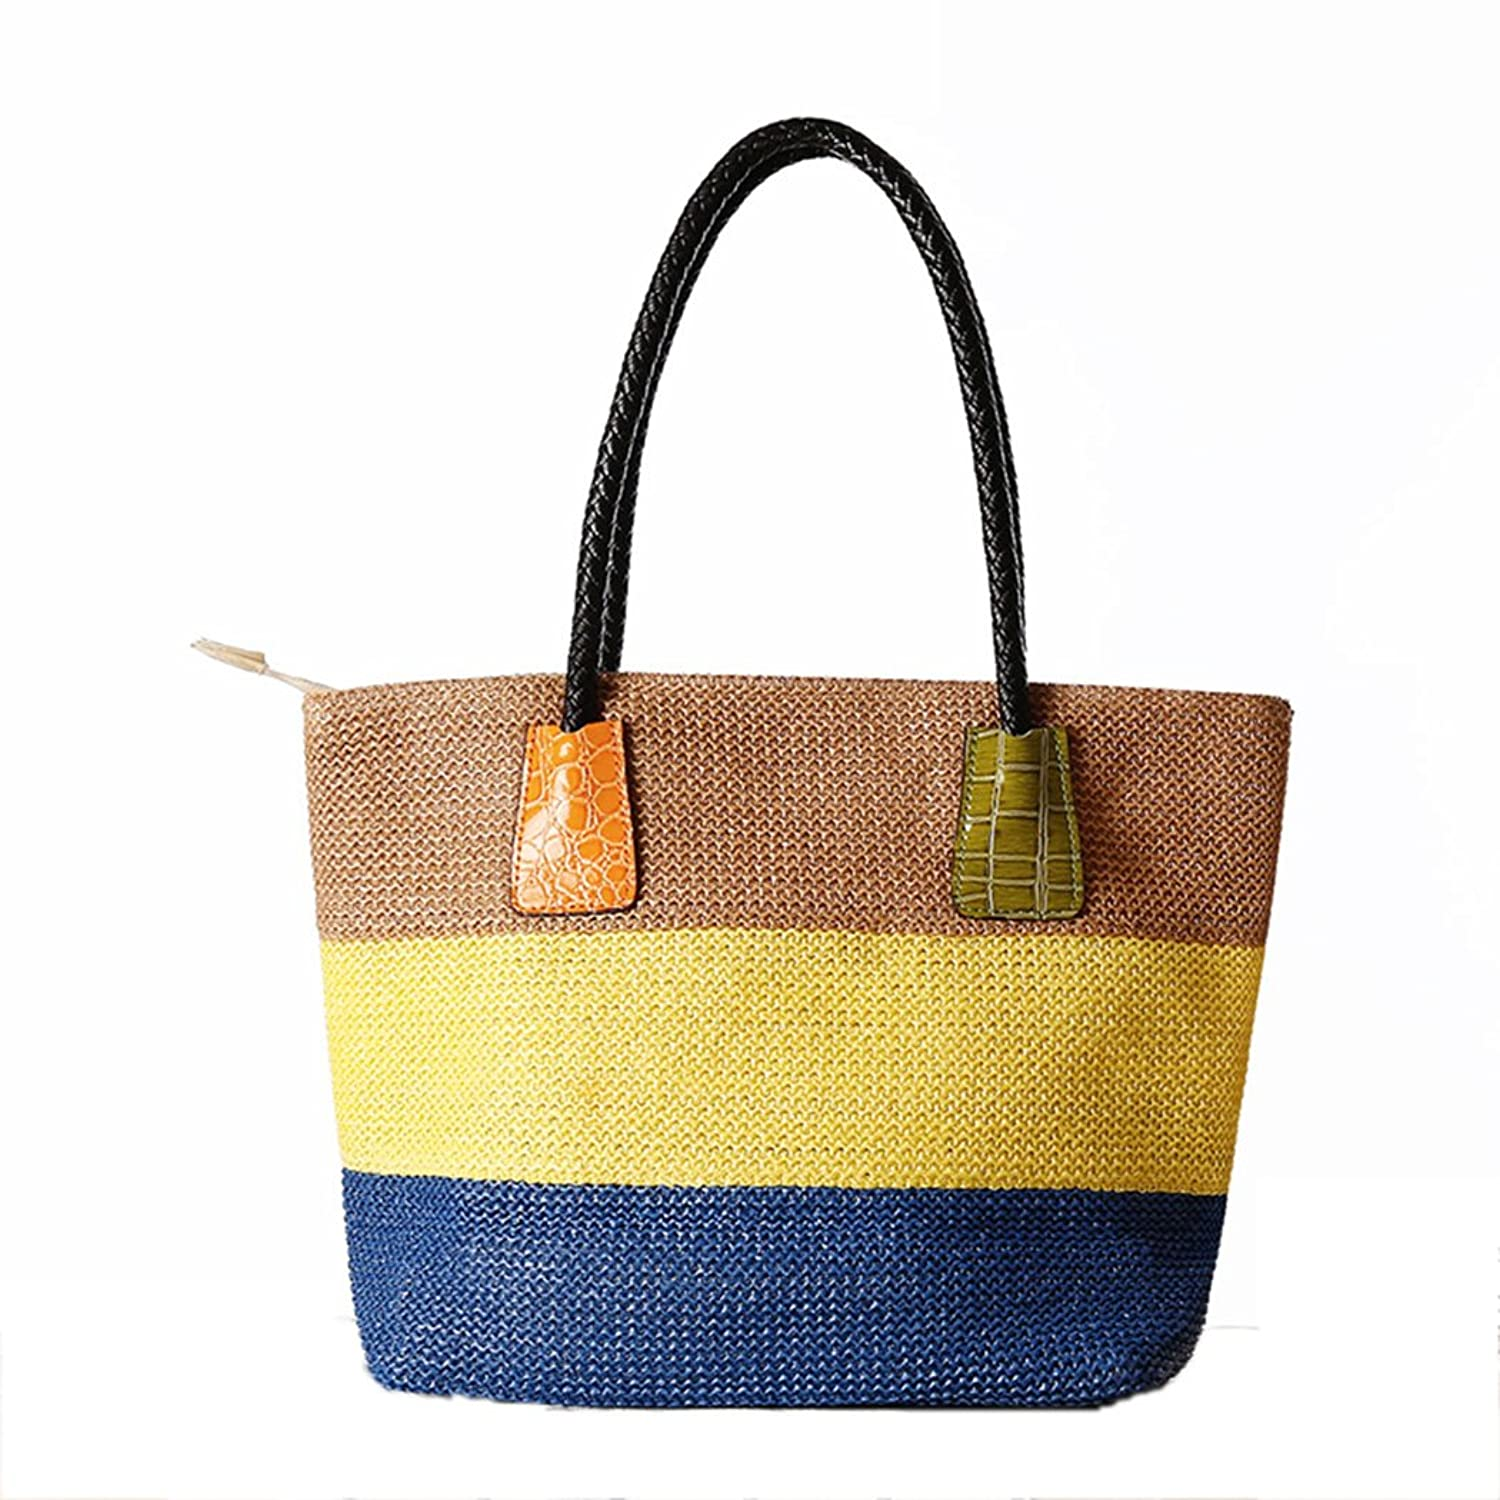 FAIRYSAN Women Summer Straw Shoulder Bag Weave Beach Bag Stripes Style Tote Bag Large